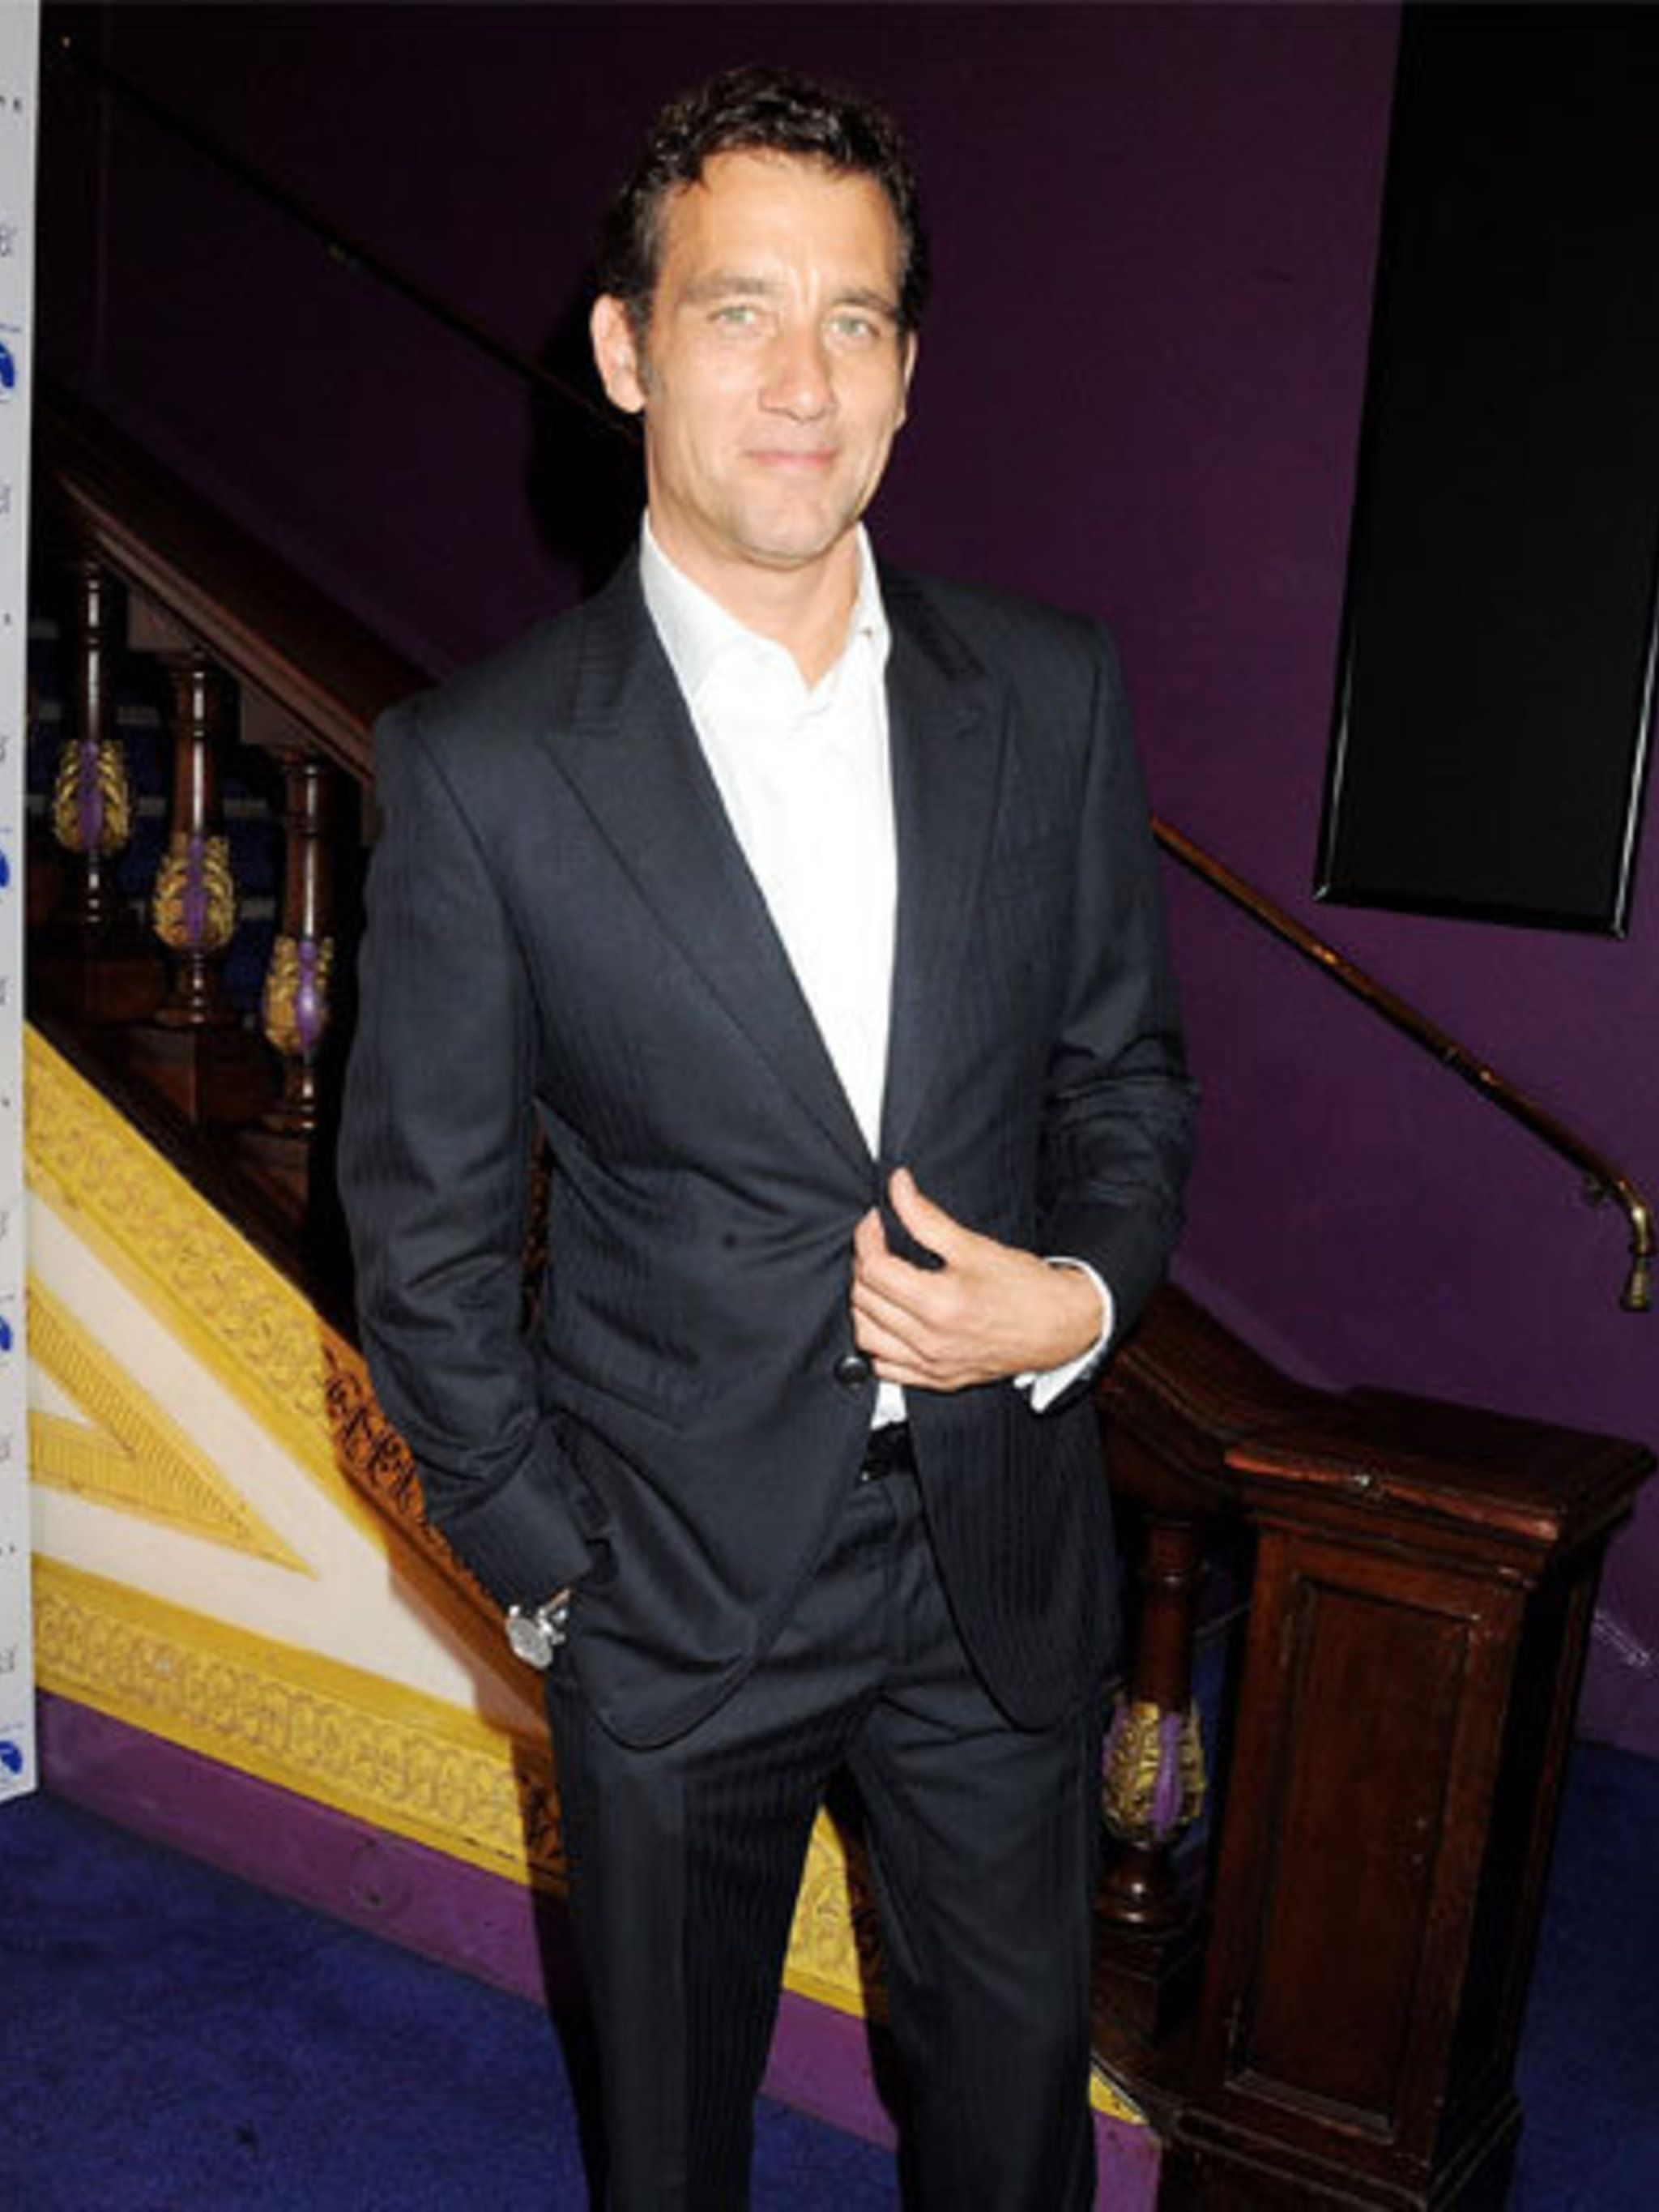 <p>Clive Owen plays an MI5 agent in political/spy thriller Shadow Dancer. He attended the UK premiere in London.</p>